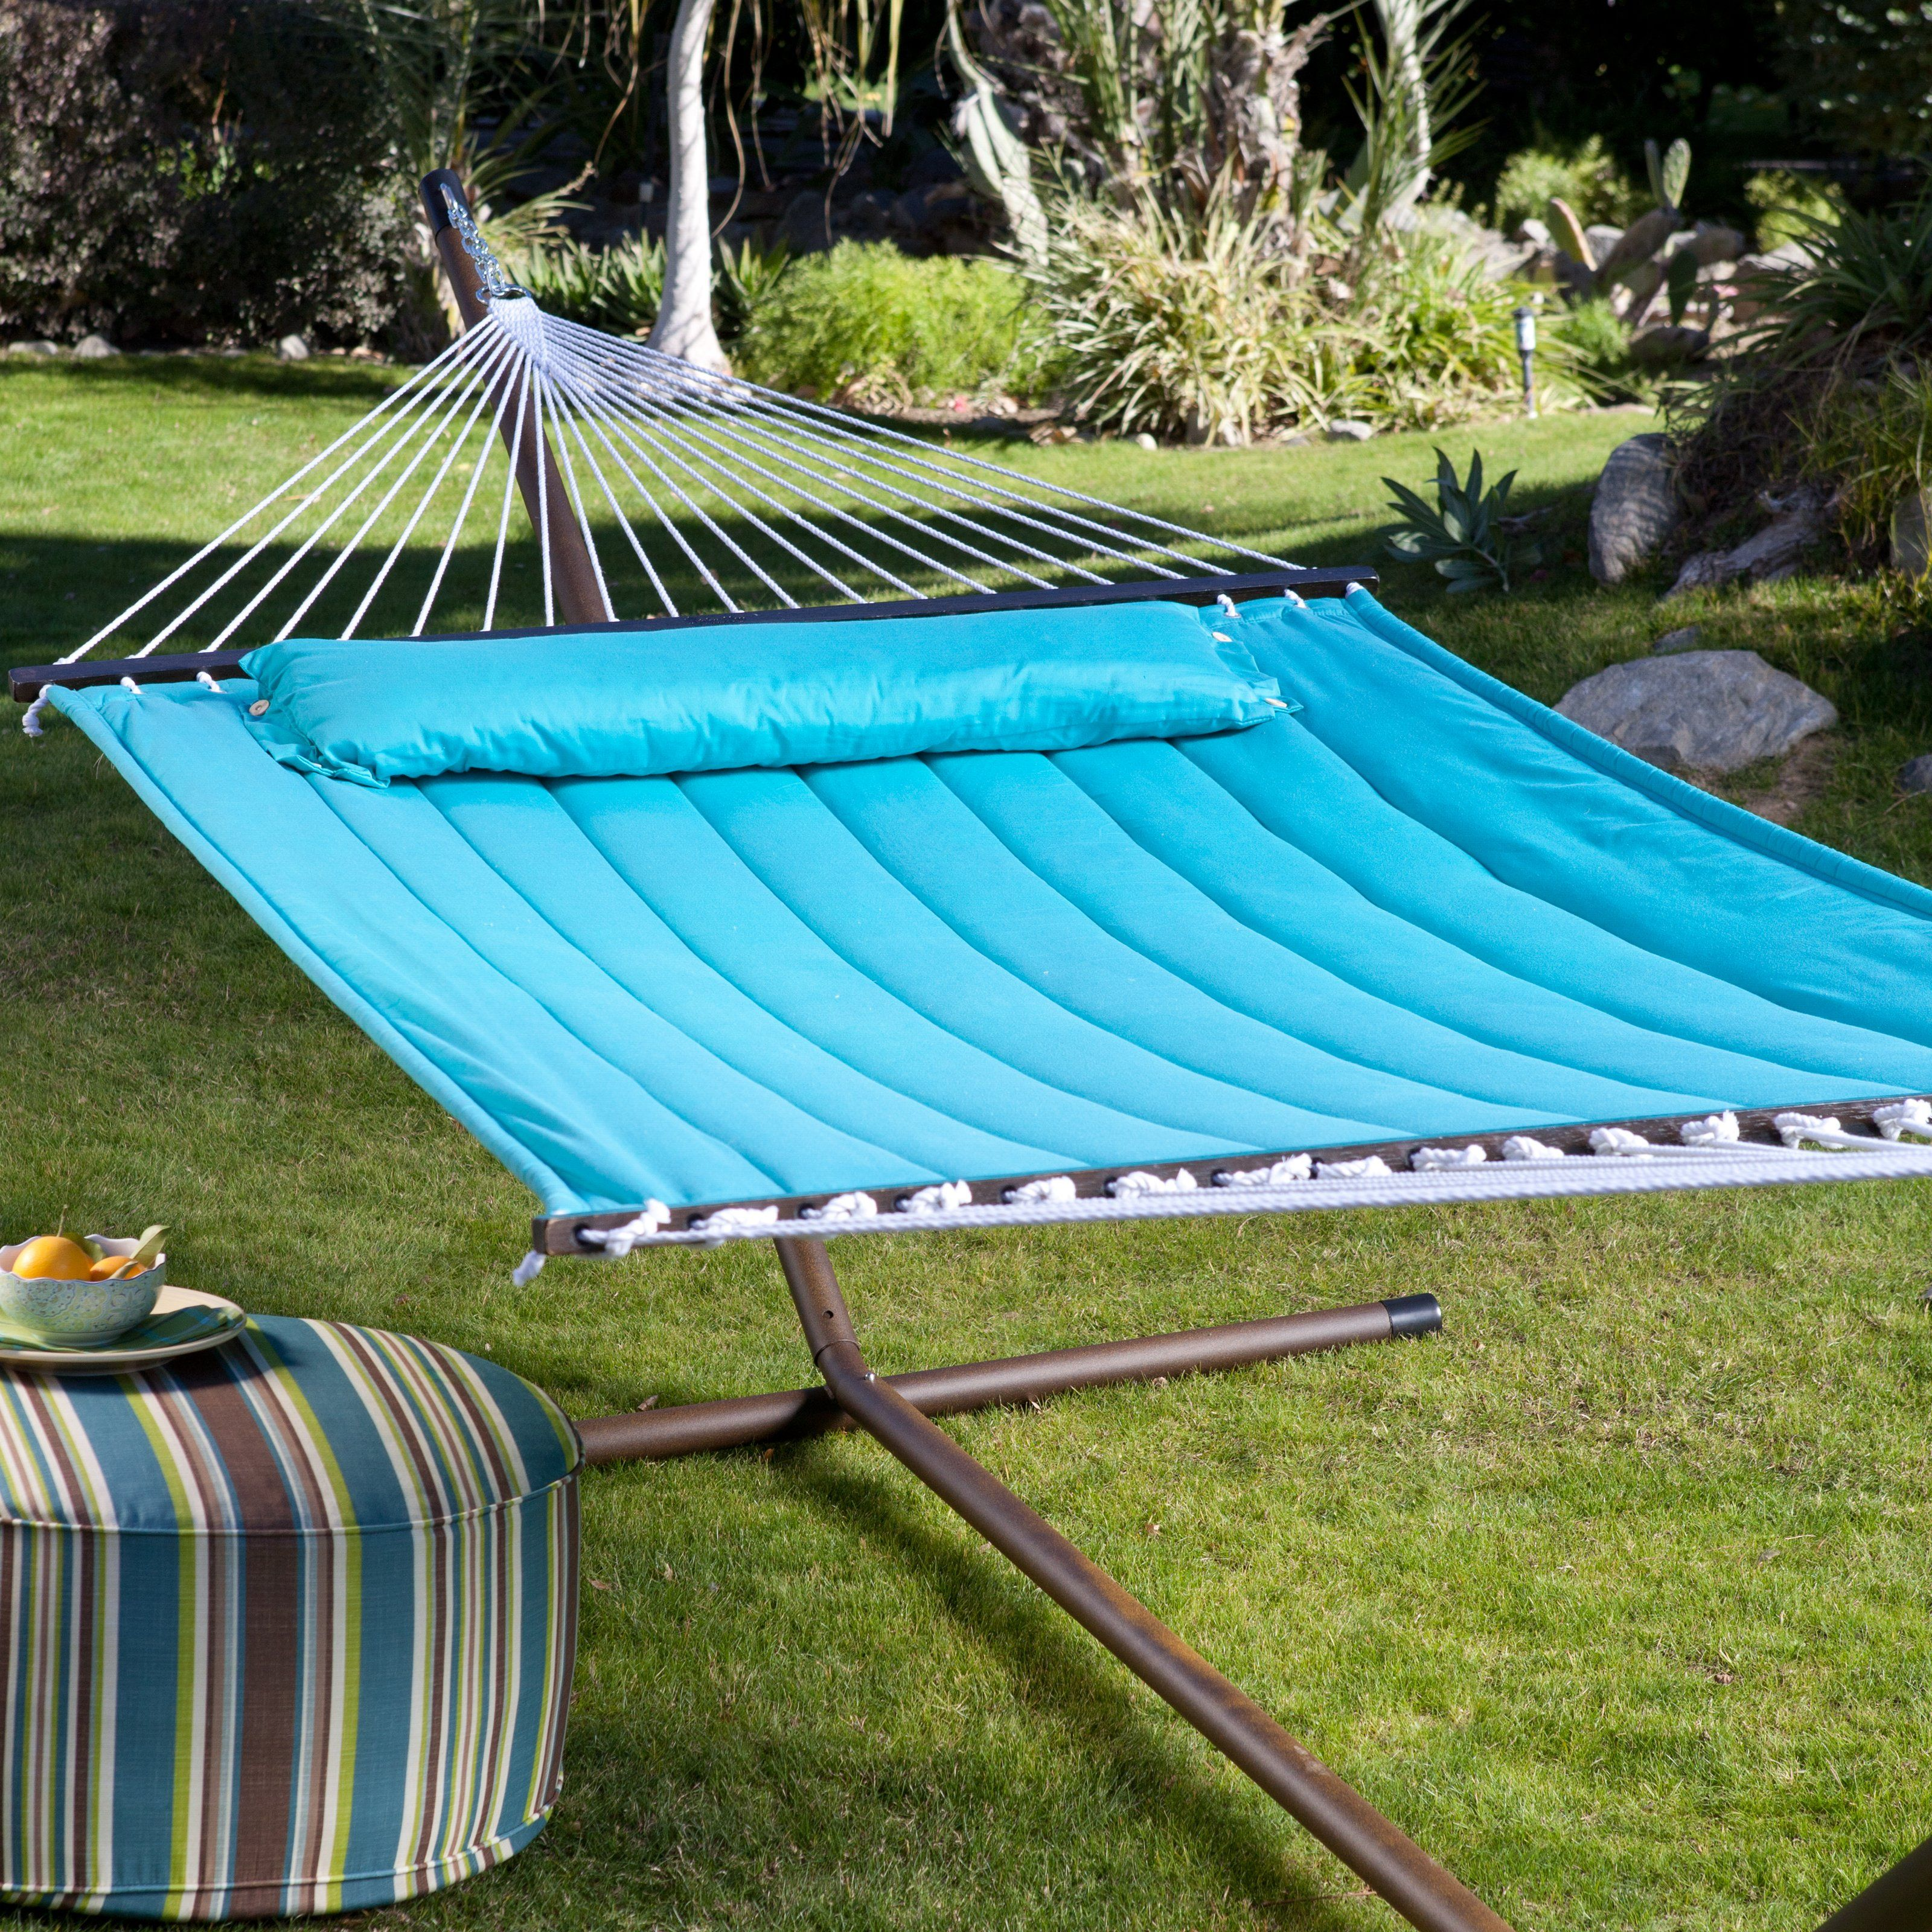 island bay 13 ft  solid turquoise quilted hammock with 15 have to have it  island bay 13 ft  solid turquoise quilted hammock      rh   pinterest